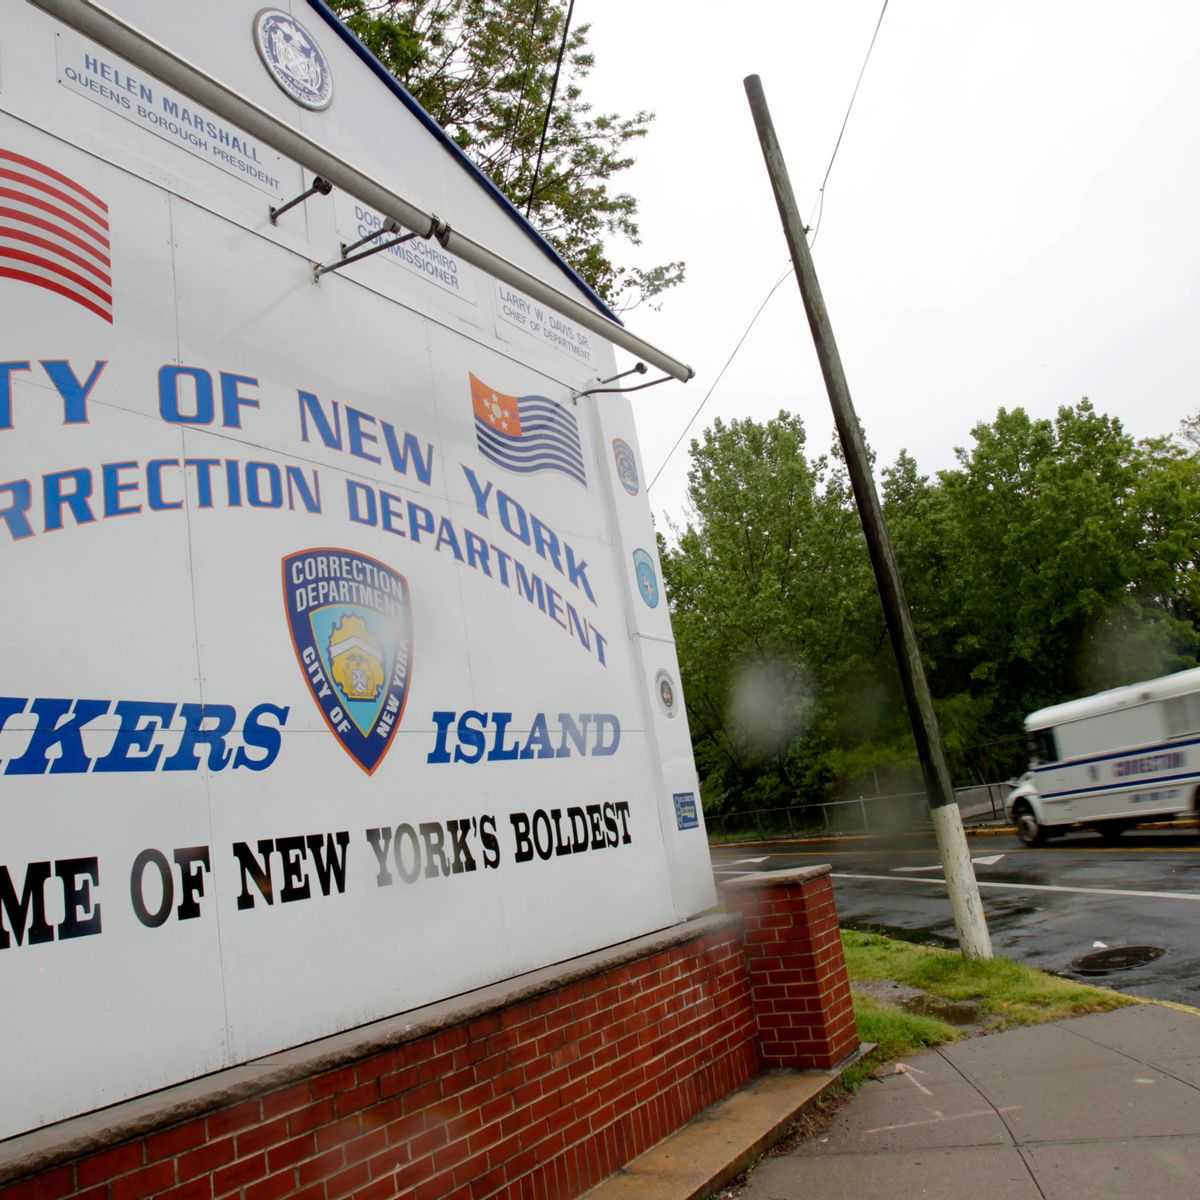 Not the end of the fight, say justice advocates, as NYC passes plan to close Rikers, open new jails